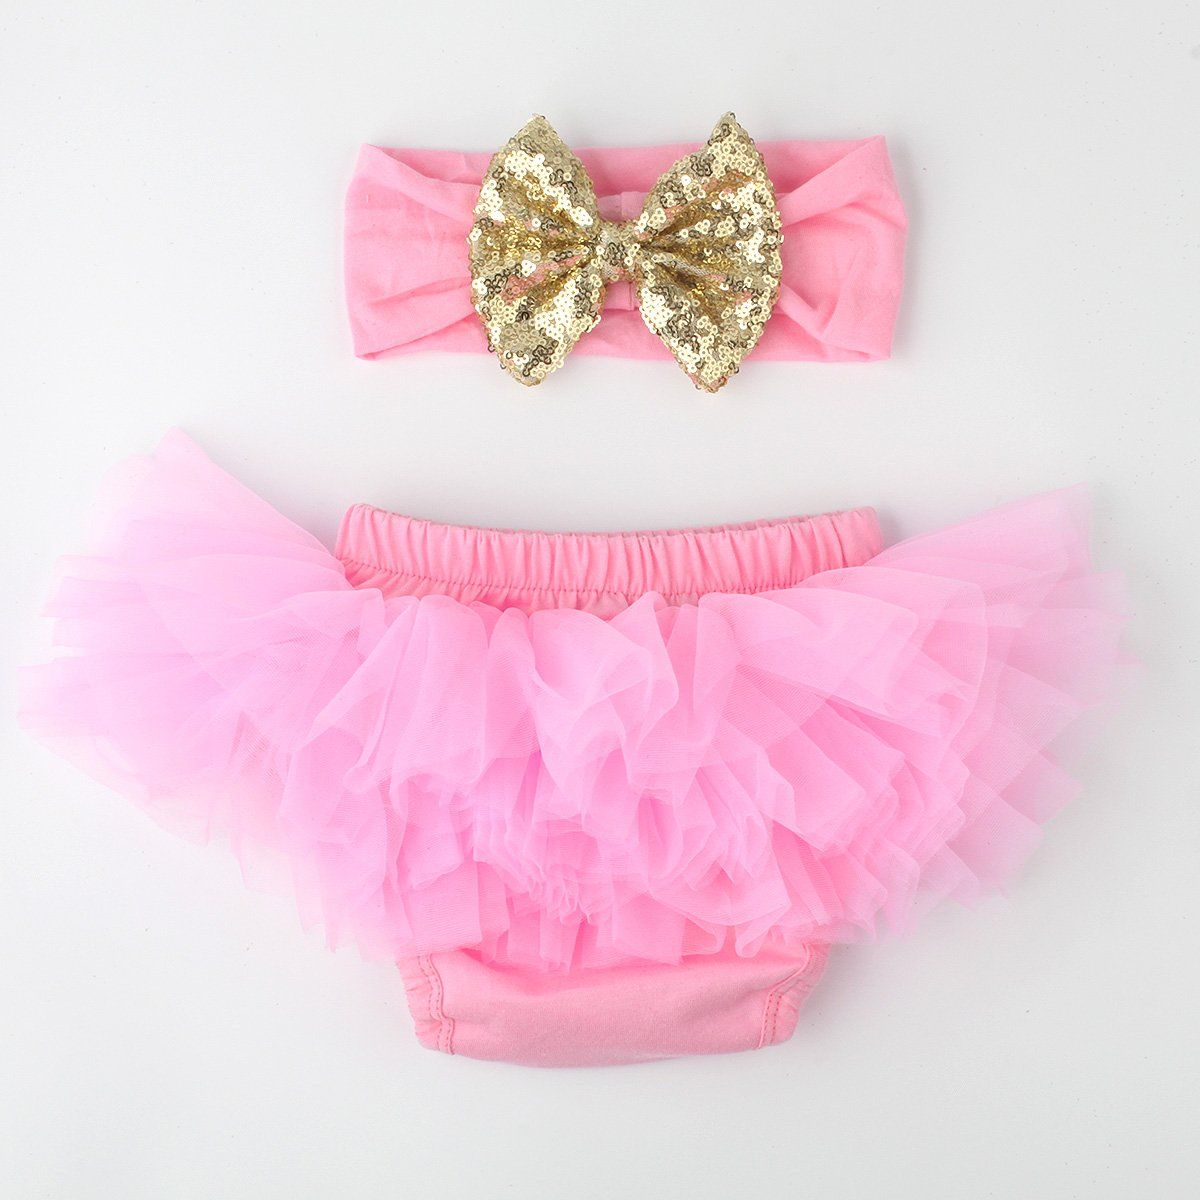 Baby Girls Tutu Bloomers Diaper Cover Cotton Tulle Bloomers and Headband Set Tutu Bloomers LFBSK017